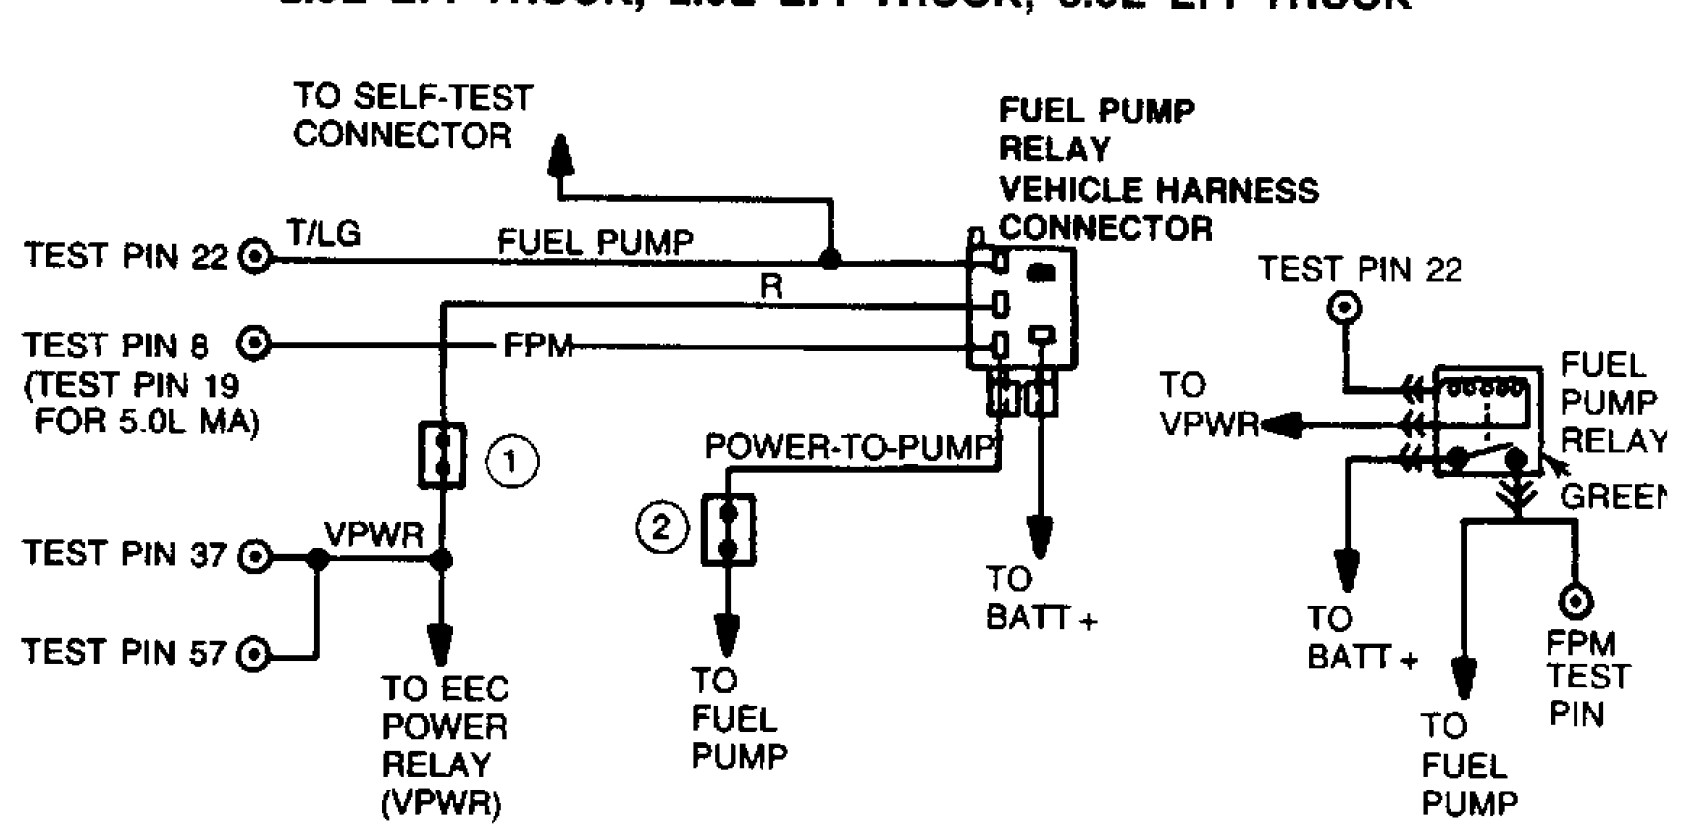 Fuel Pump Wiring Diagram Moreover Ford F 150 Dome Light Wiring Diagram